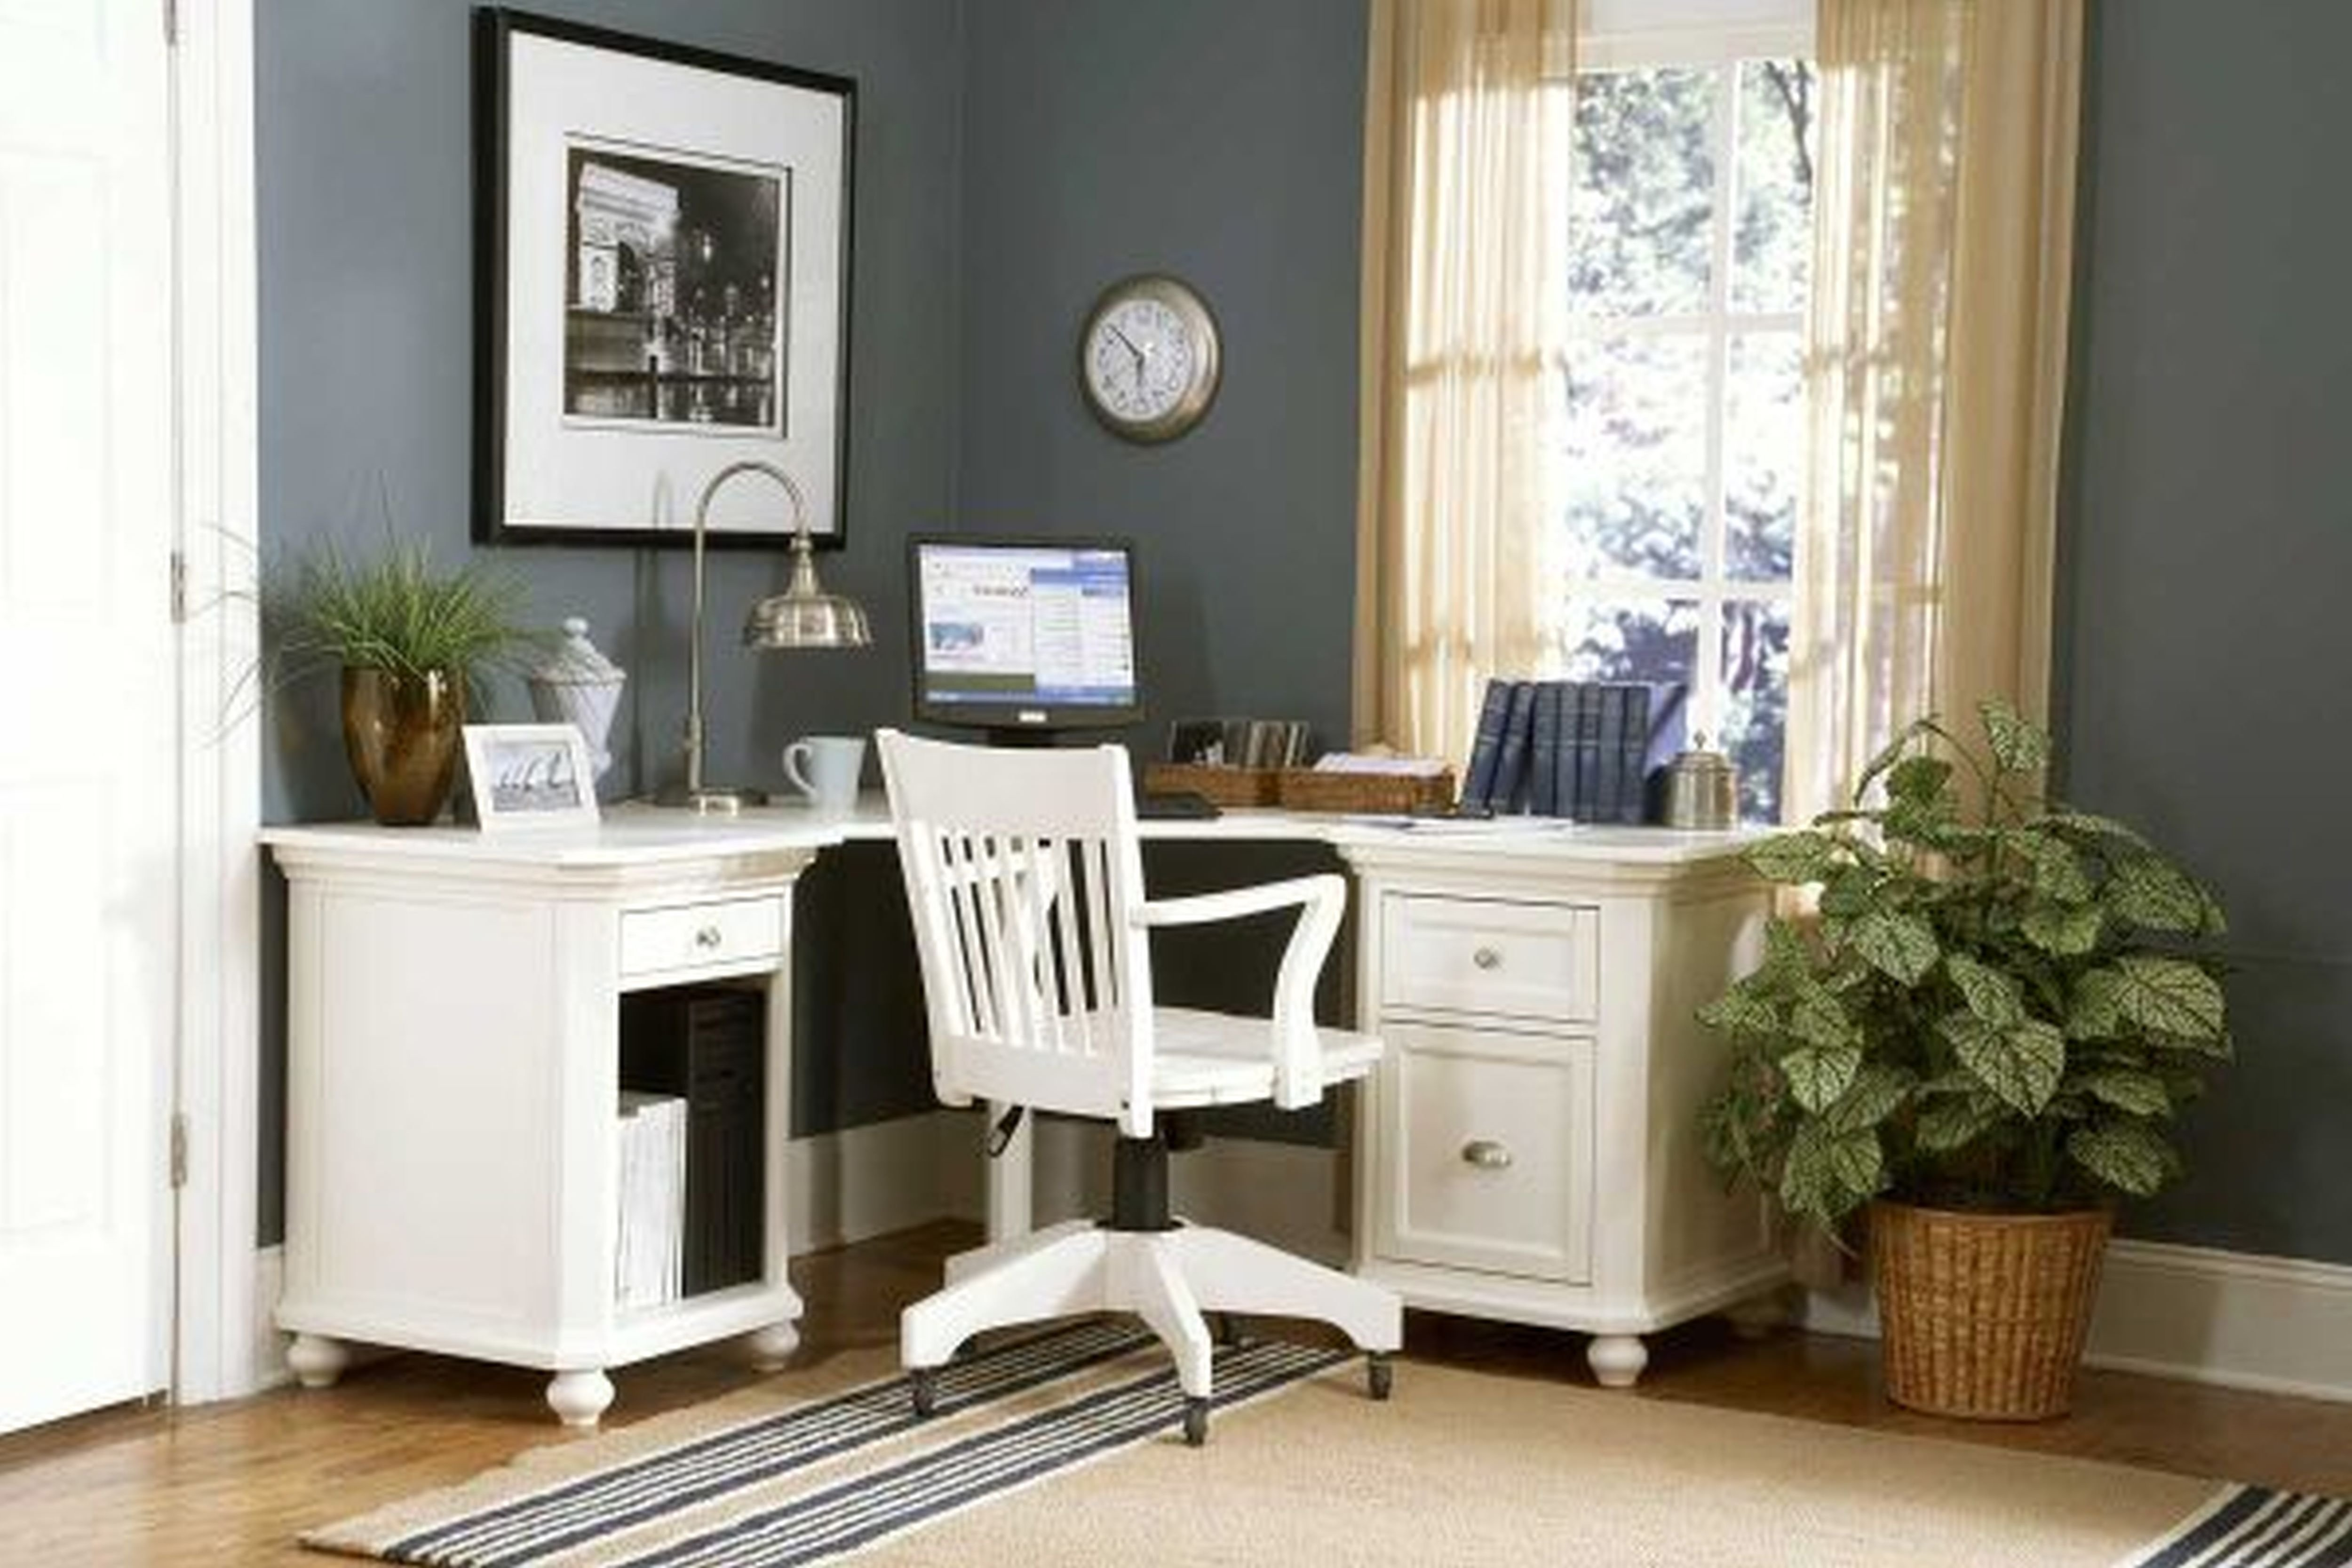 10 Best Decorating Ideas For Home Office home office home office office furniture ideas decorating simple 2020